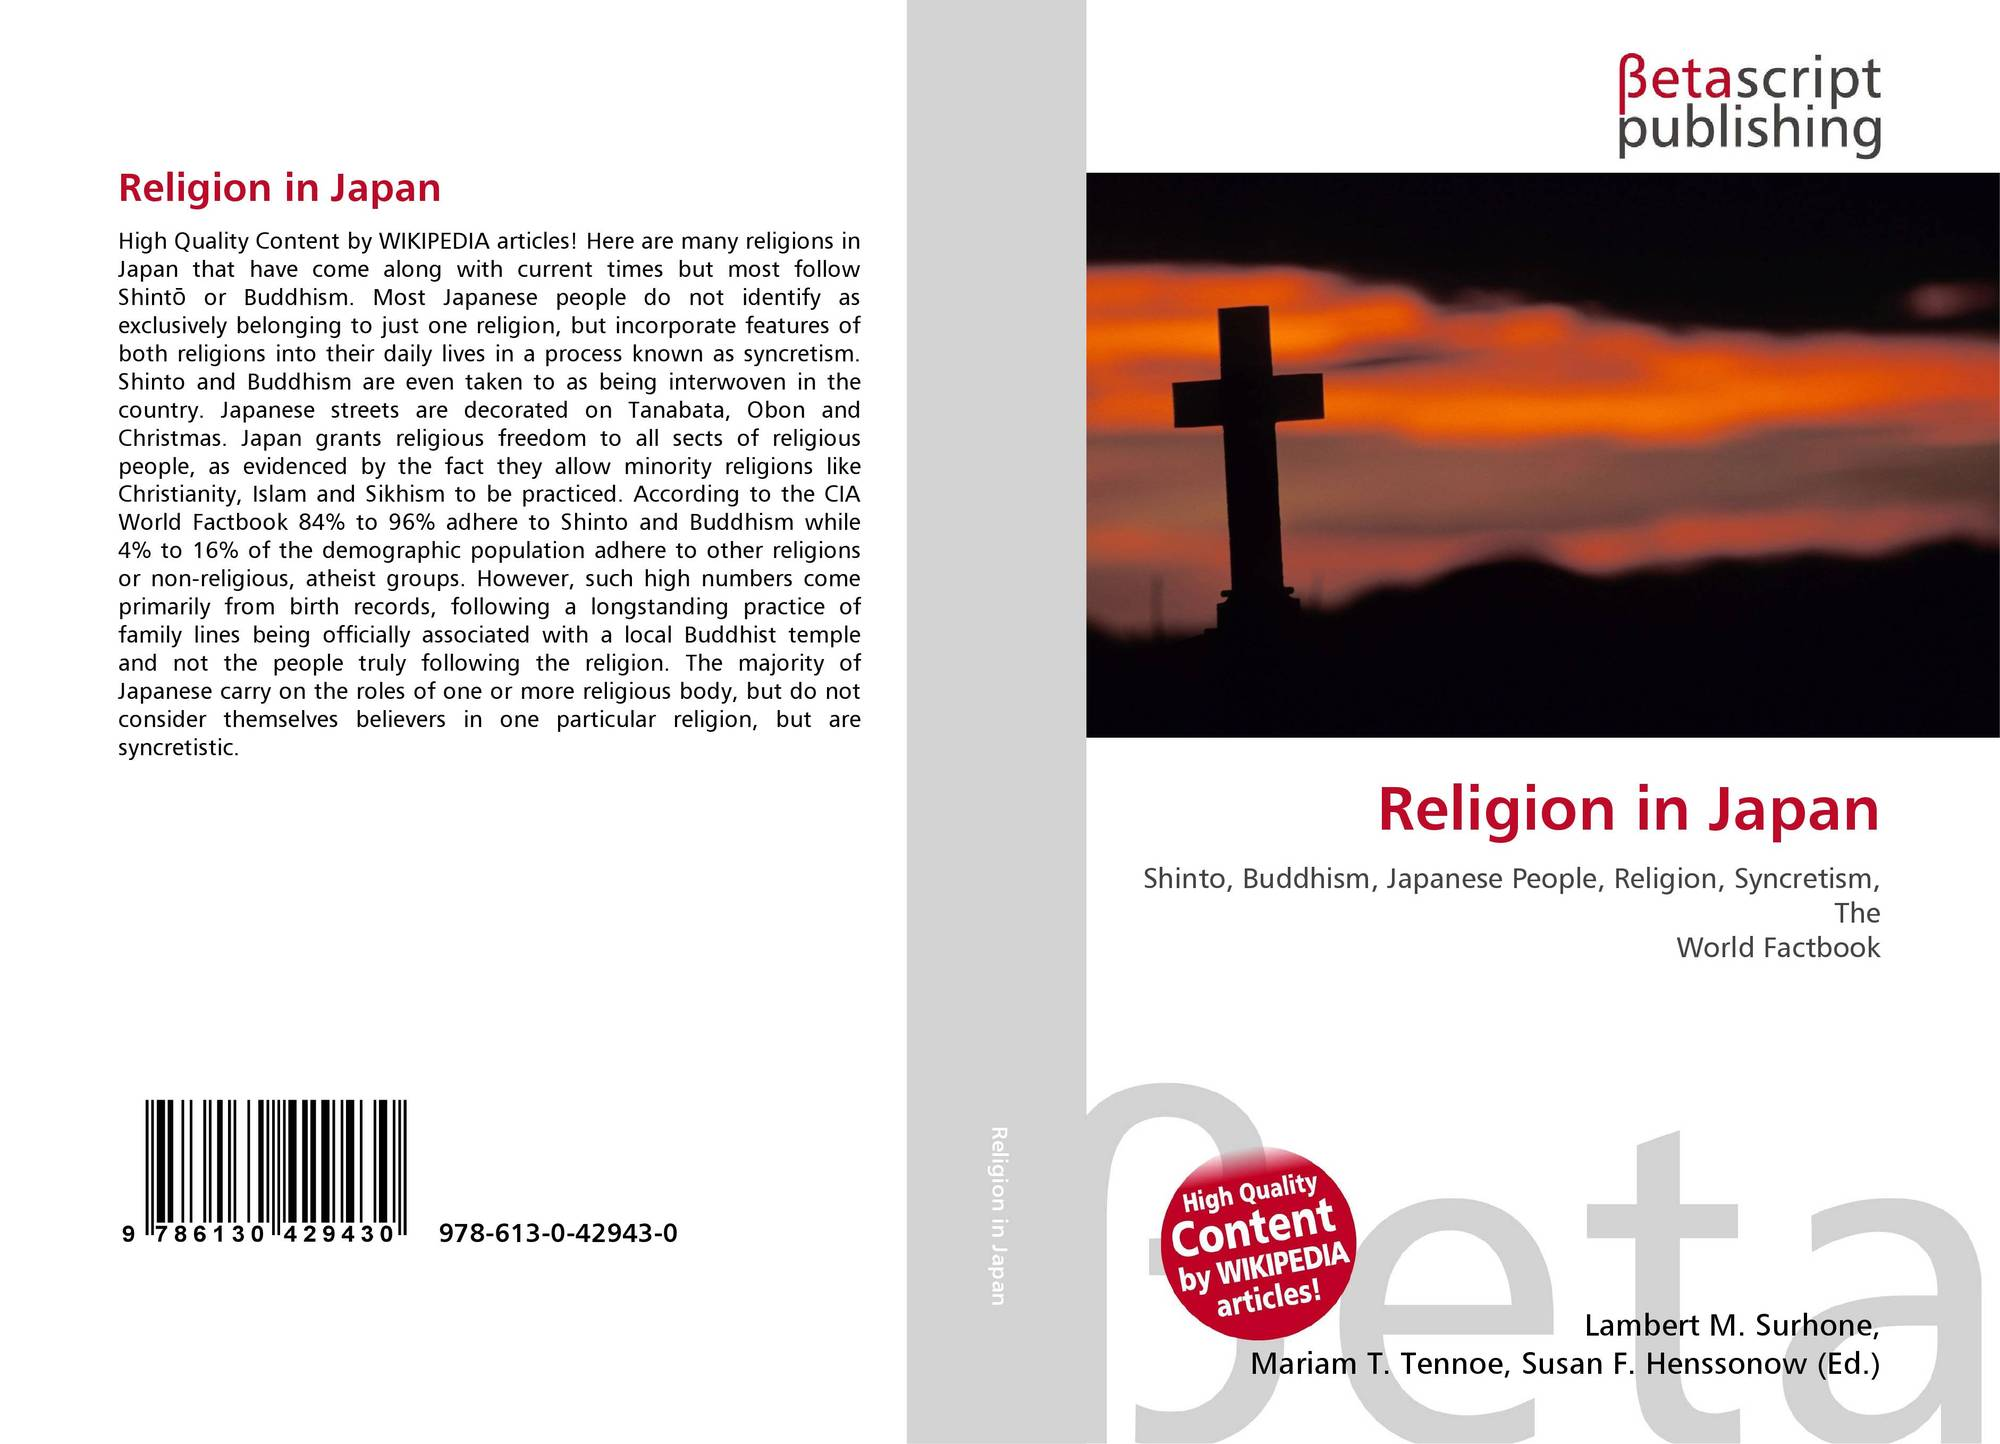 the background of nationalism theology religion essay Religion and nationalism: four approaches rogers brubaker  forthcoming in nations and nationalism, 2011 abstract: building on recent literature, this paper discusses four ways of studying the relation between religion and nationalism the first is to treat religion and nationalism, along with ethnicity and race, as analogous phenomena.